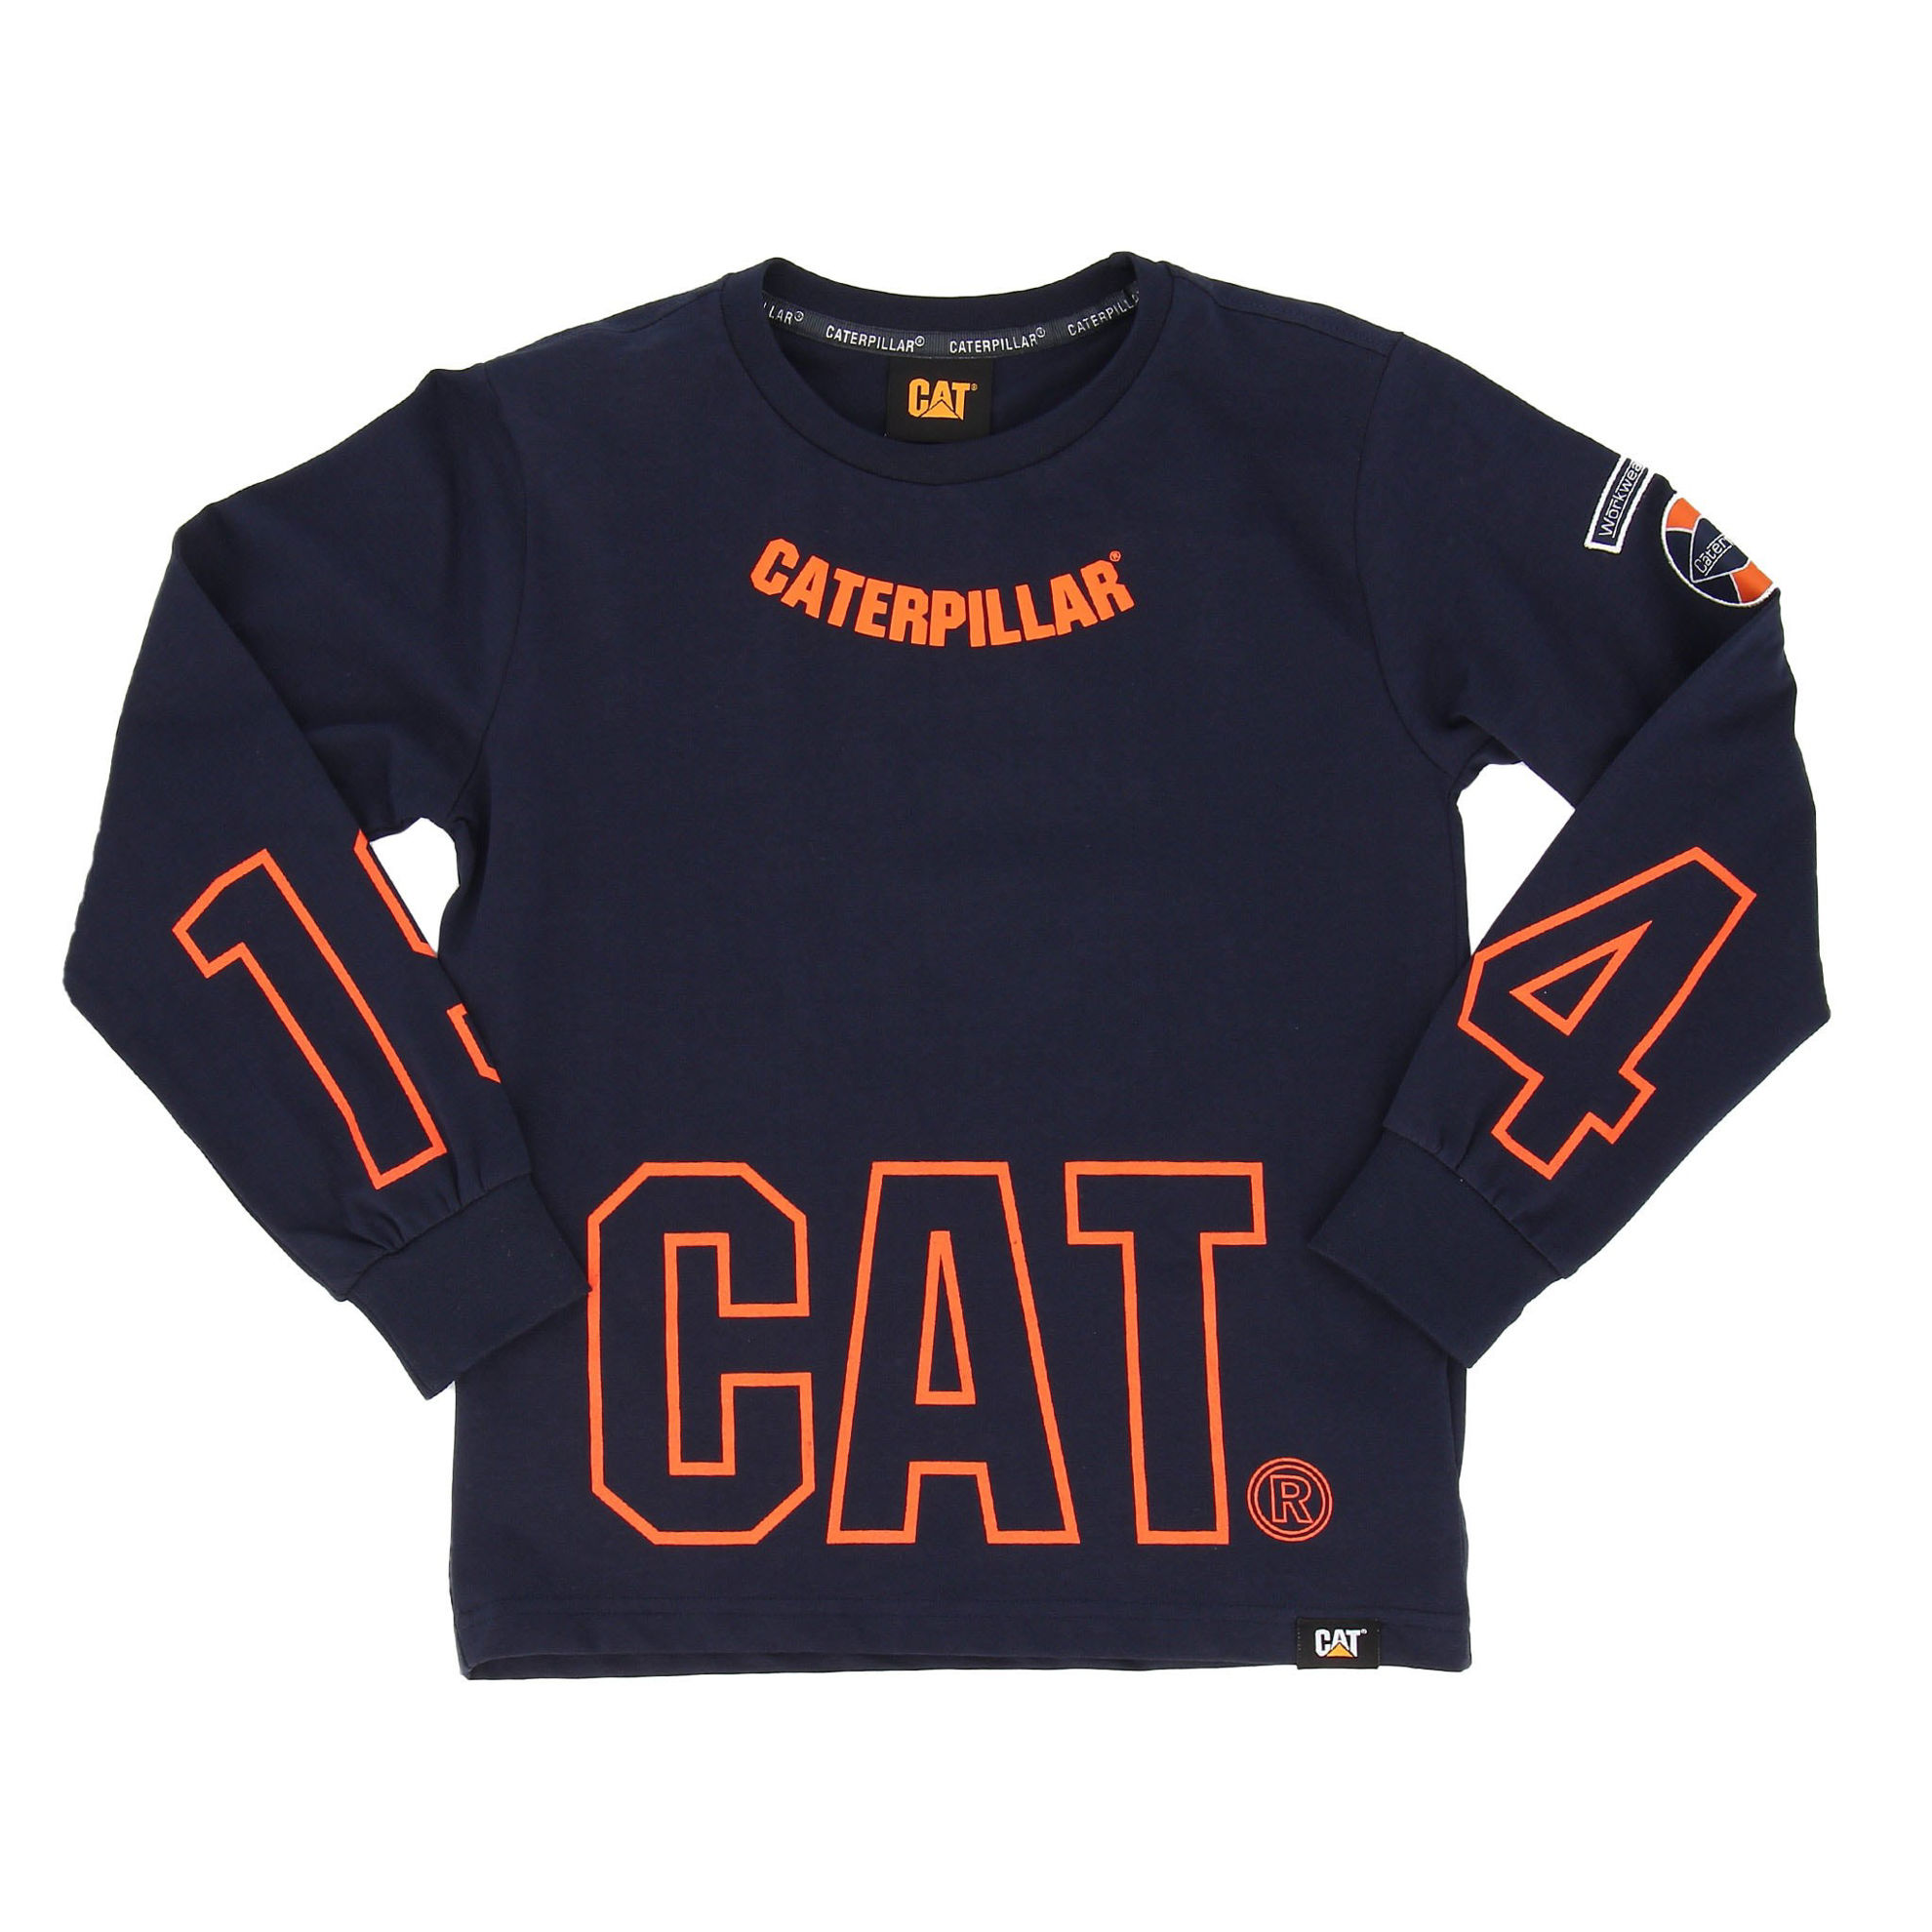 Immagine di CATERPILLAR - BOY TSHIRT MANICA LUNGA CAT GRANDE